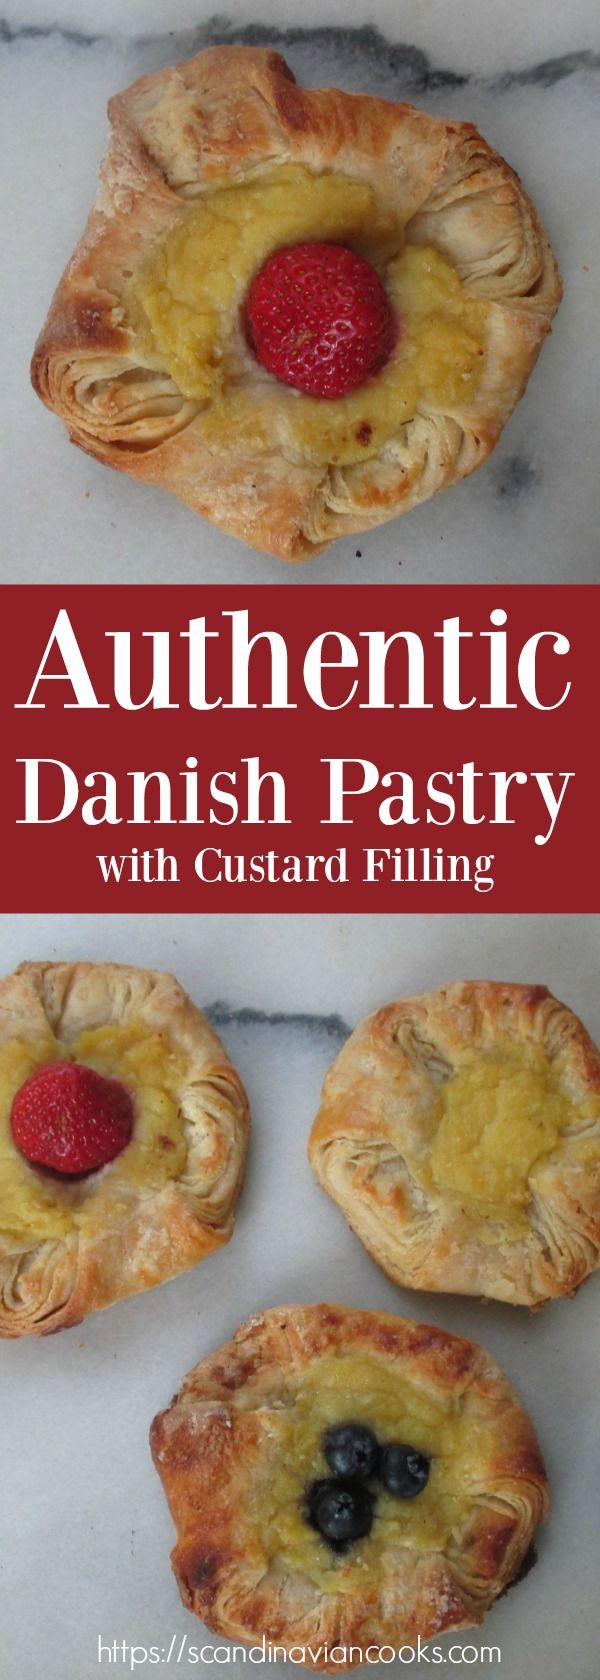 I Love To Add Fresh Berries On My Danish Pastries Wienerbrod That Has A Custard Filling In The Center Especially Wh Recipes Danish Pastry Scandinavian Food